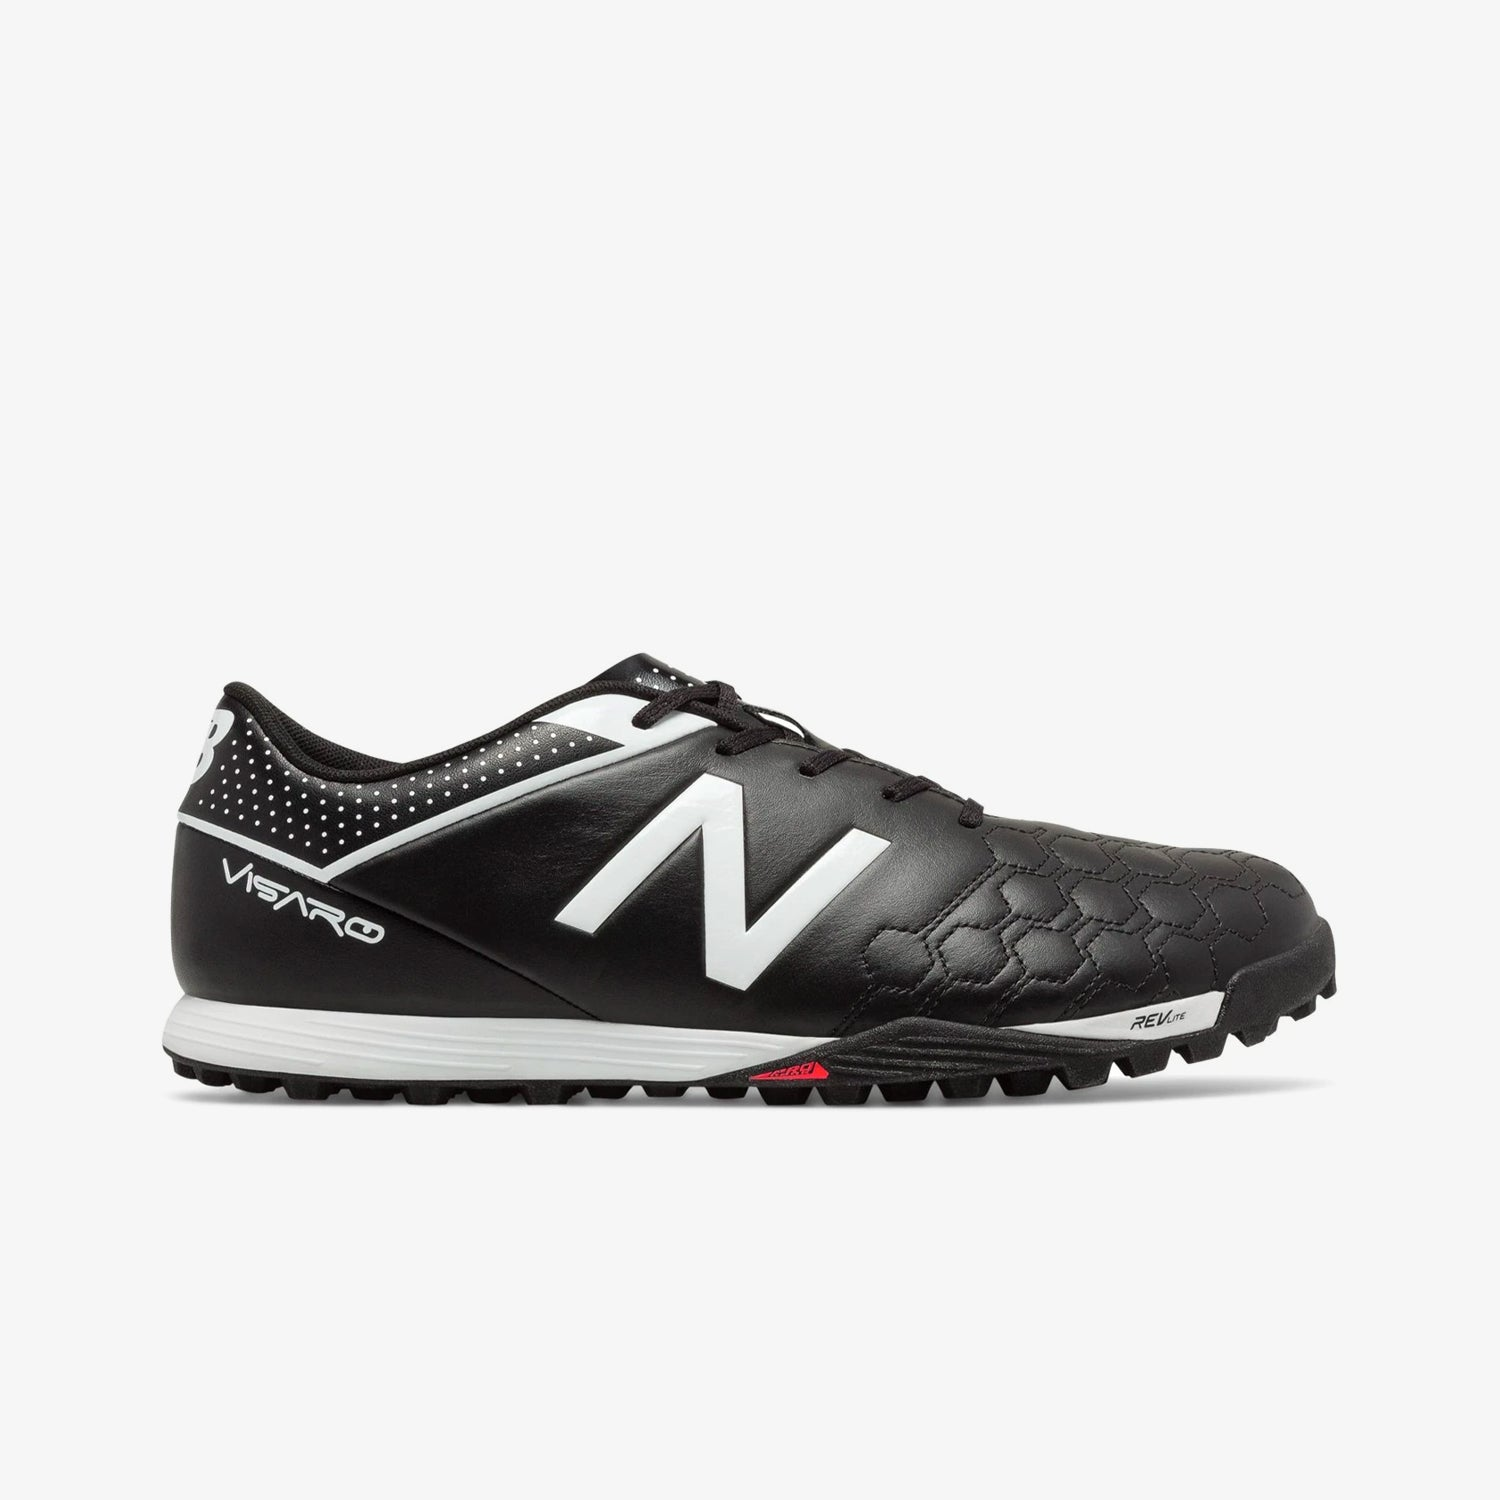 Visaro Leather Turf Soccer Shoes - Black